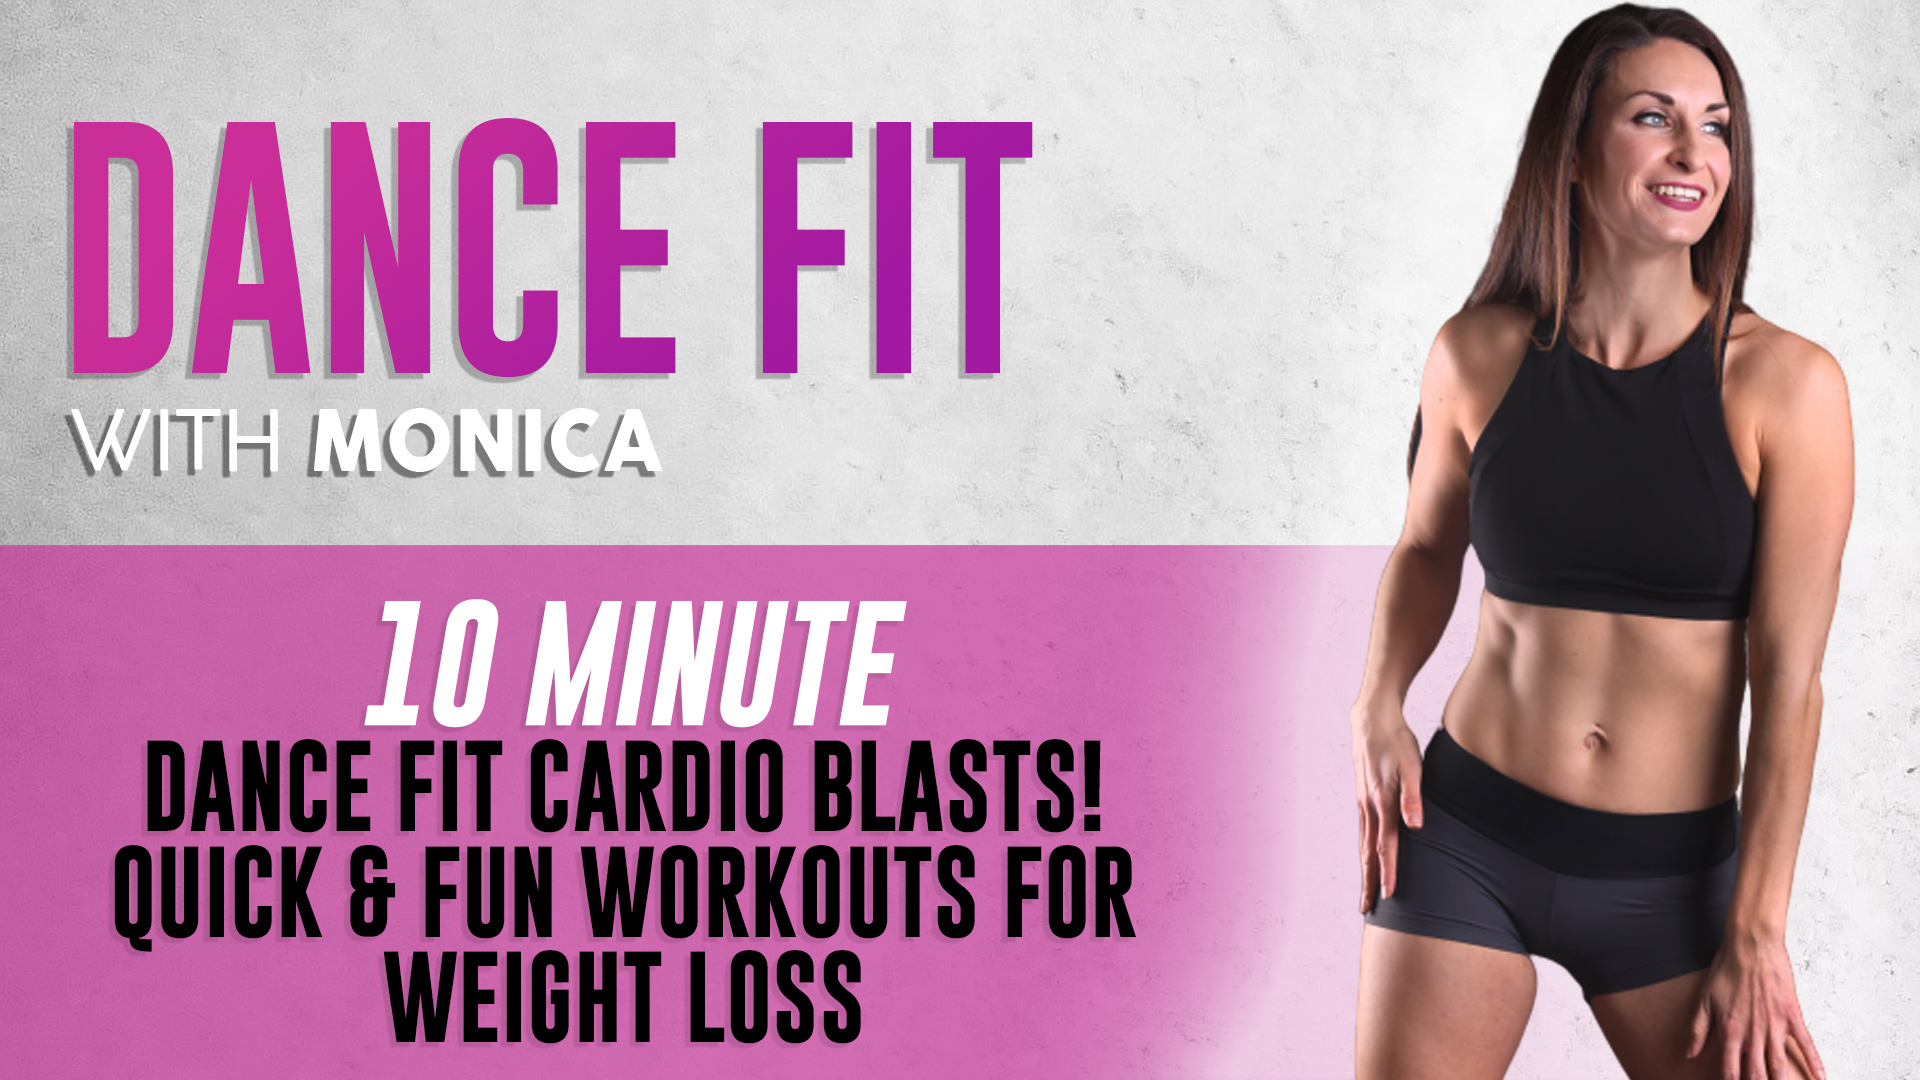 10 Minute Dance Fit Cardio Blasts! Quick and Fun Workouts for Weight Loss | DanceFit with Monica